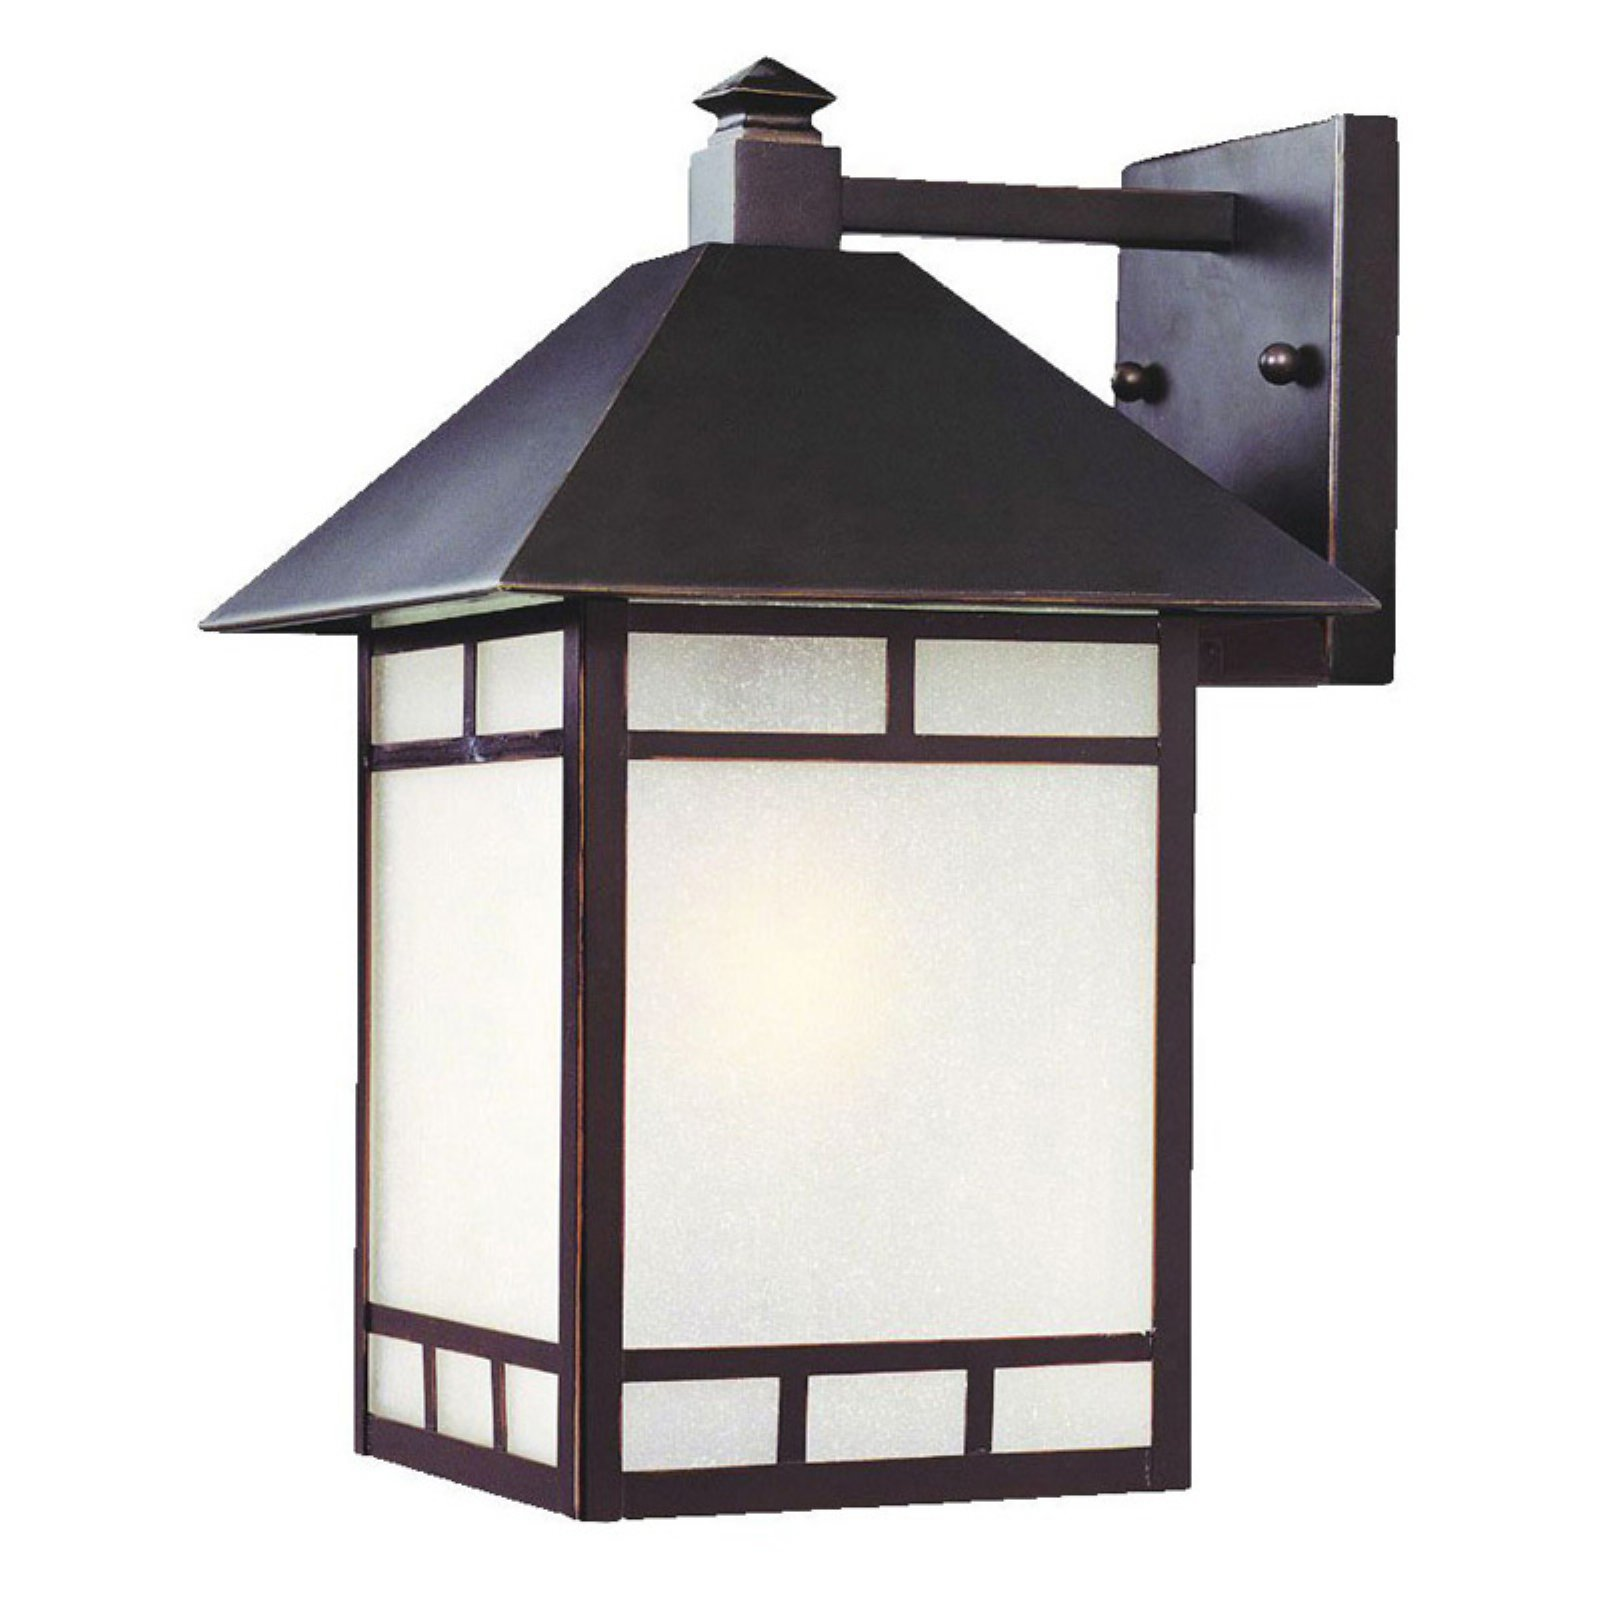 Image of Acclaim Lighting Artisan 10 in. Outdoor Wall Mount Light Fixture